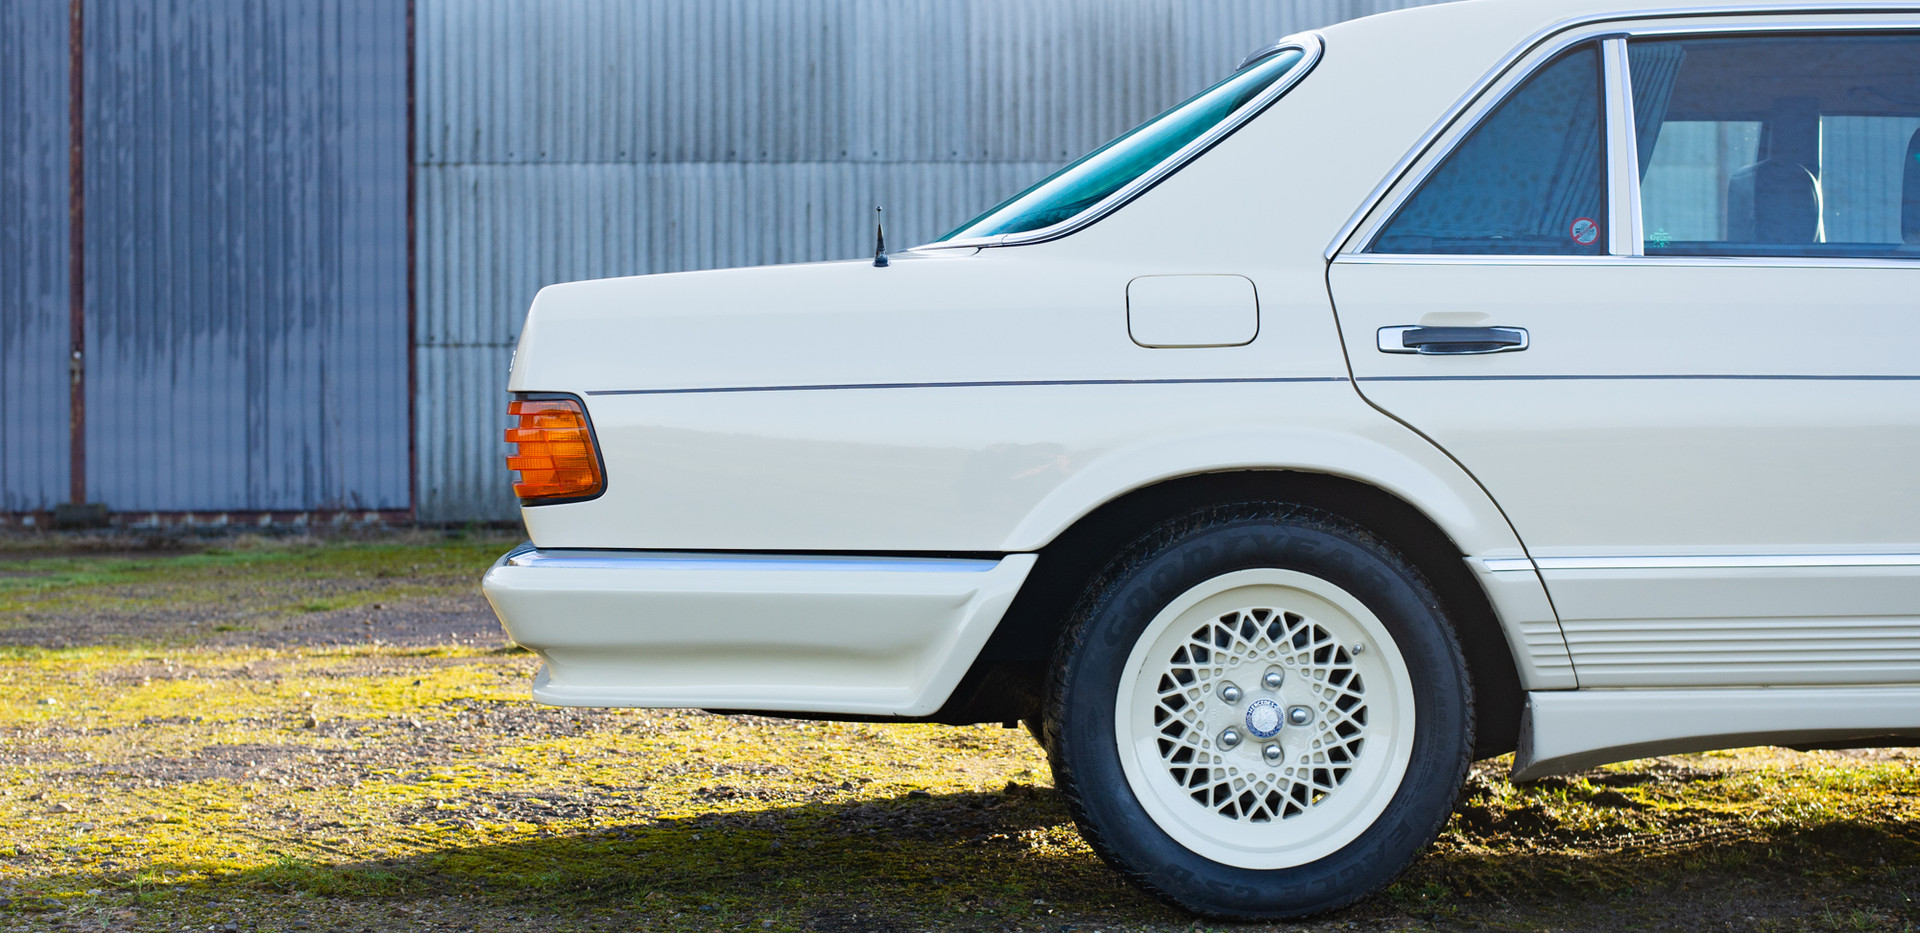 W126 Cream 500SEL for sale uk-10.jpg